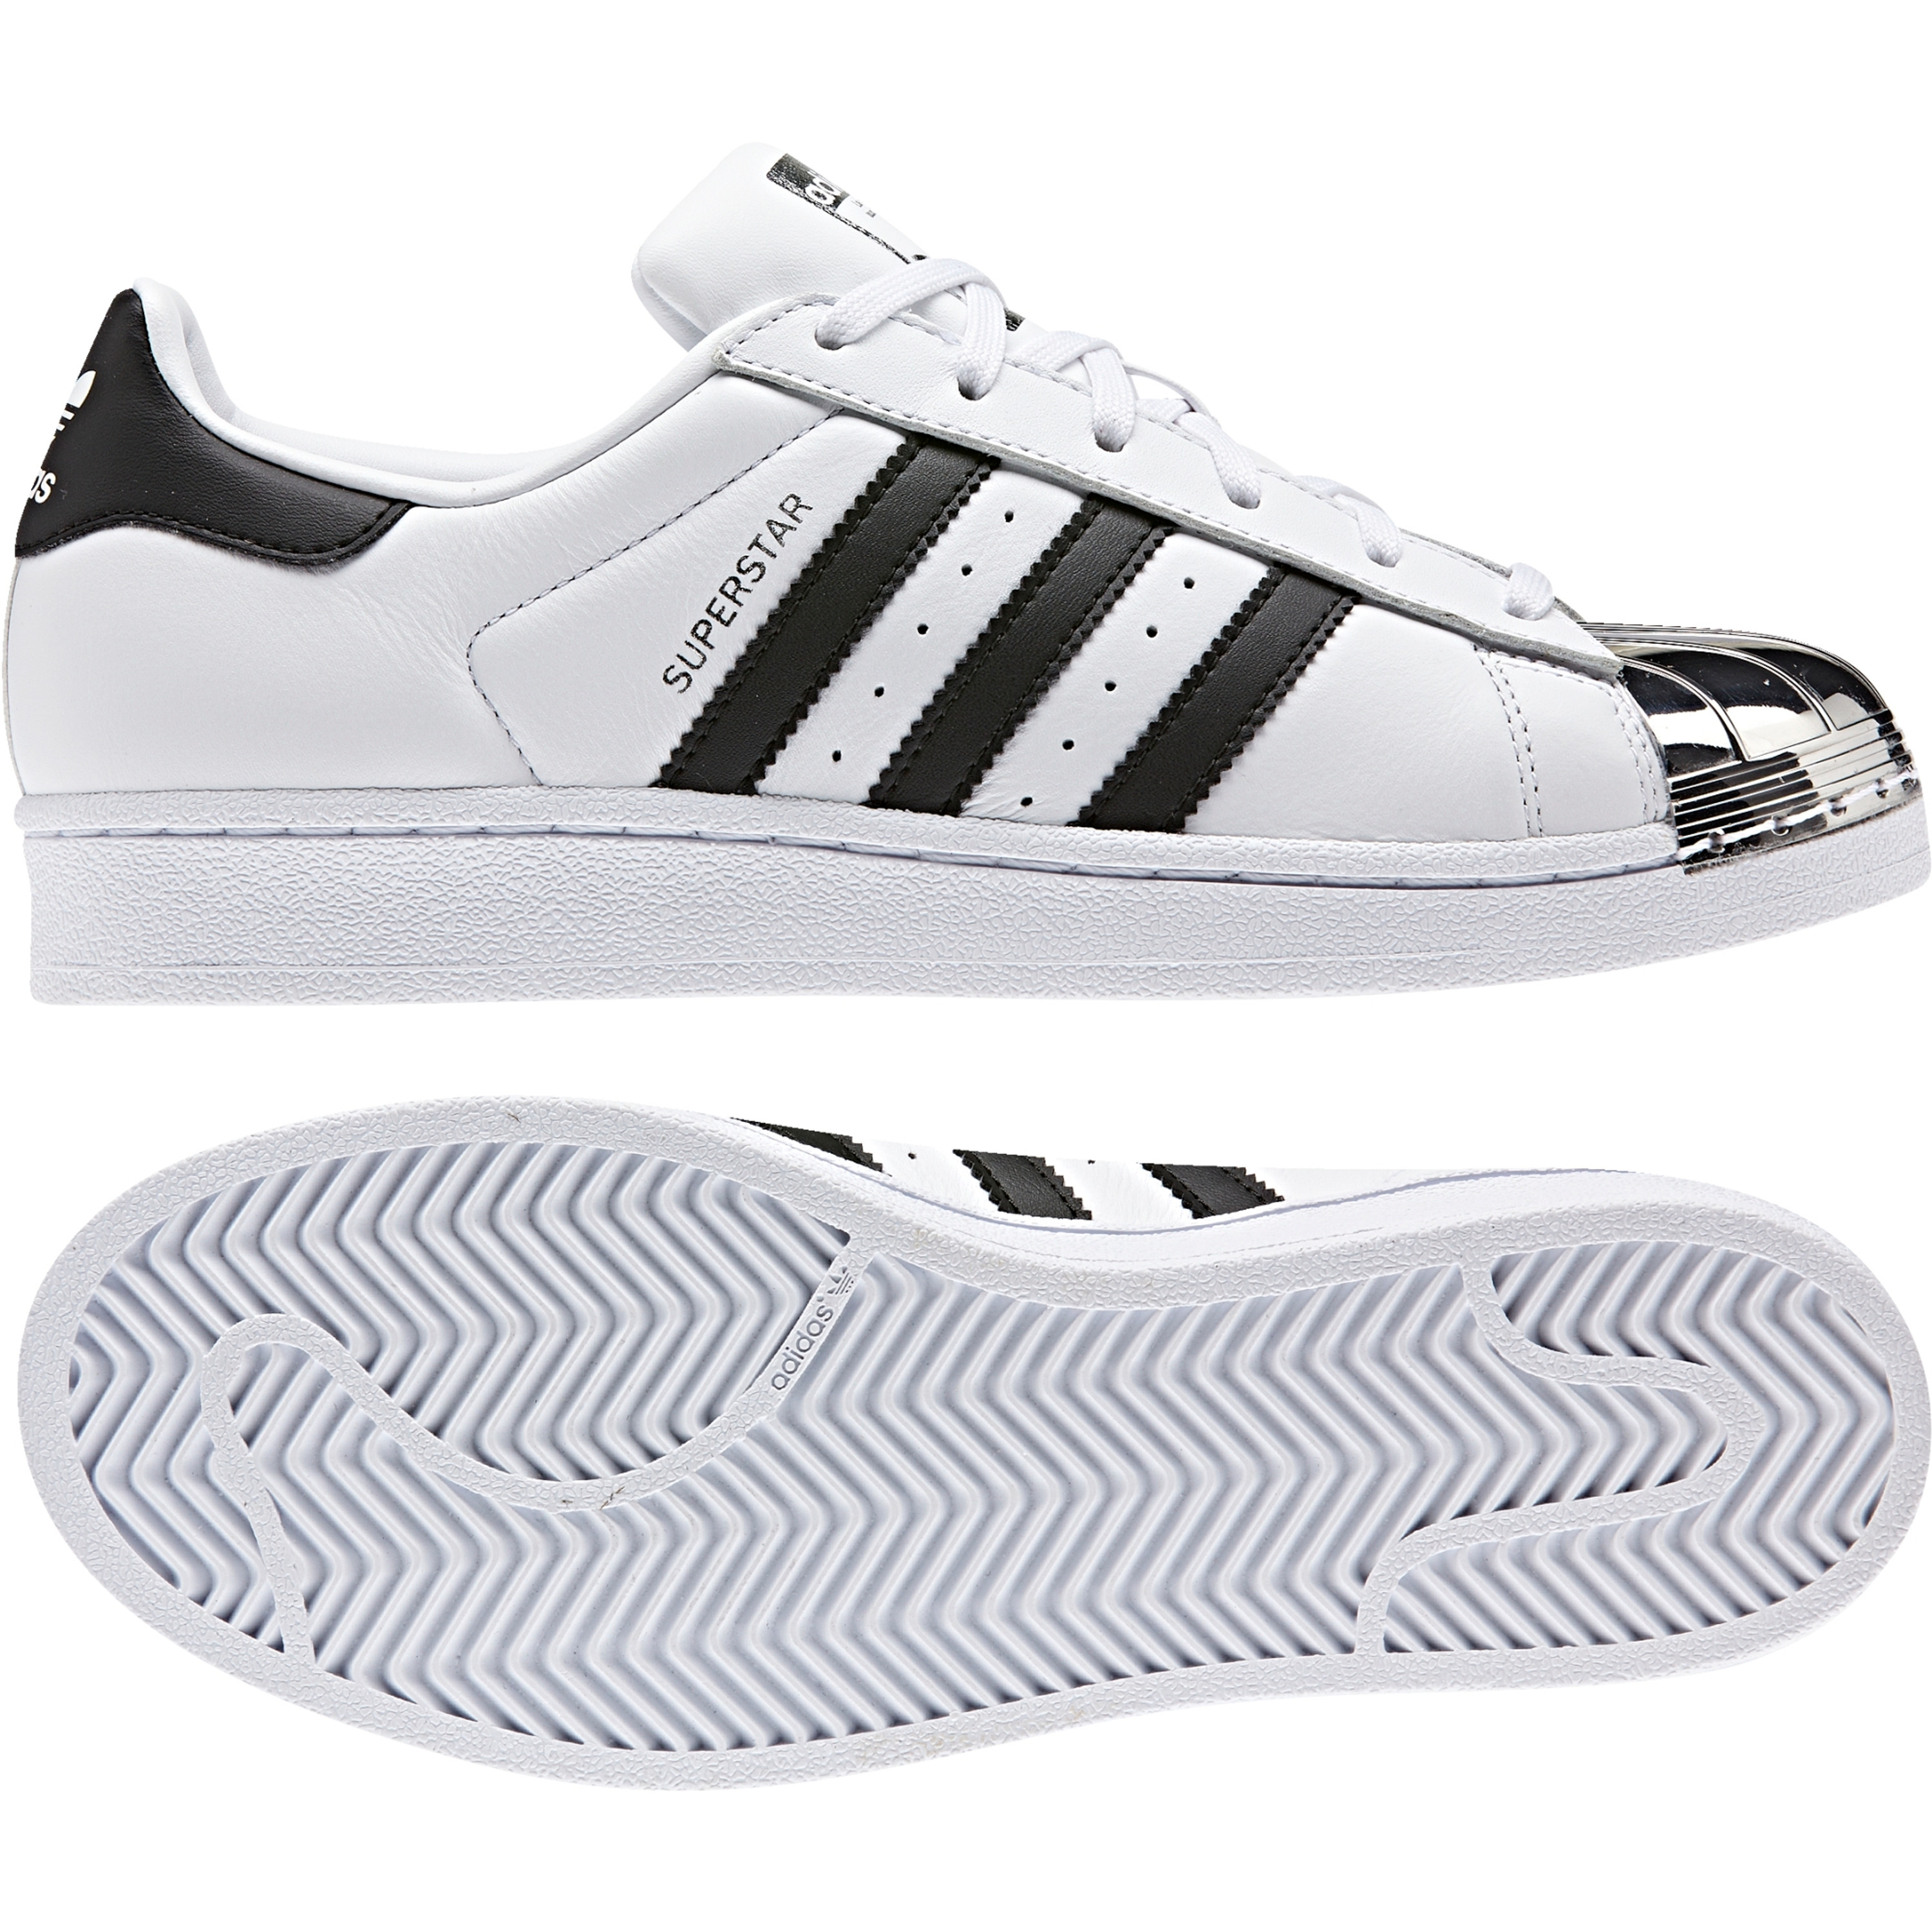 Adidas Superstar Metal Toe Retro & Vintage Sneakers für Damen in weiss metallic